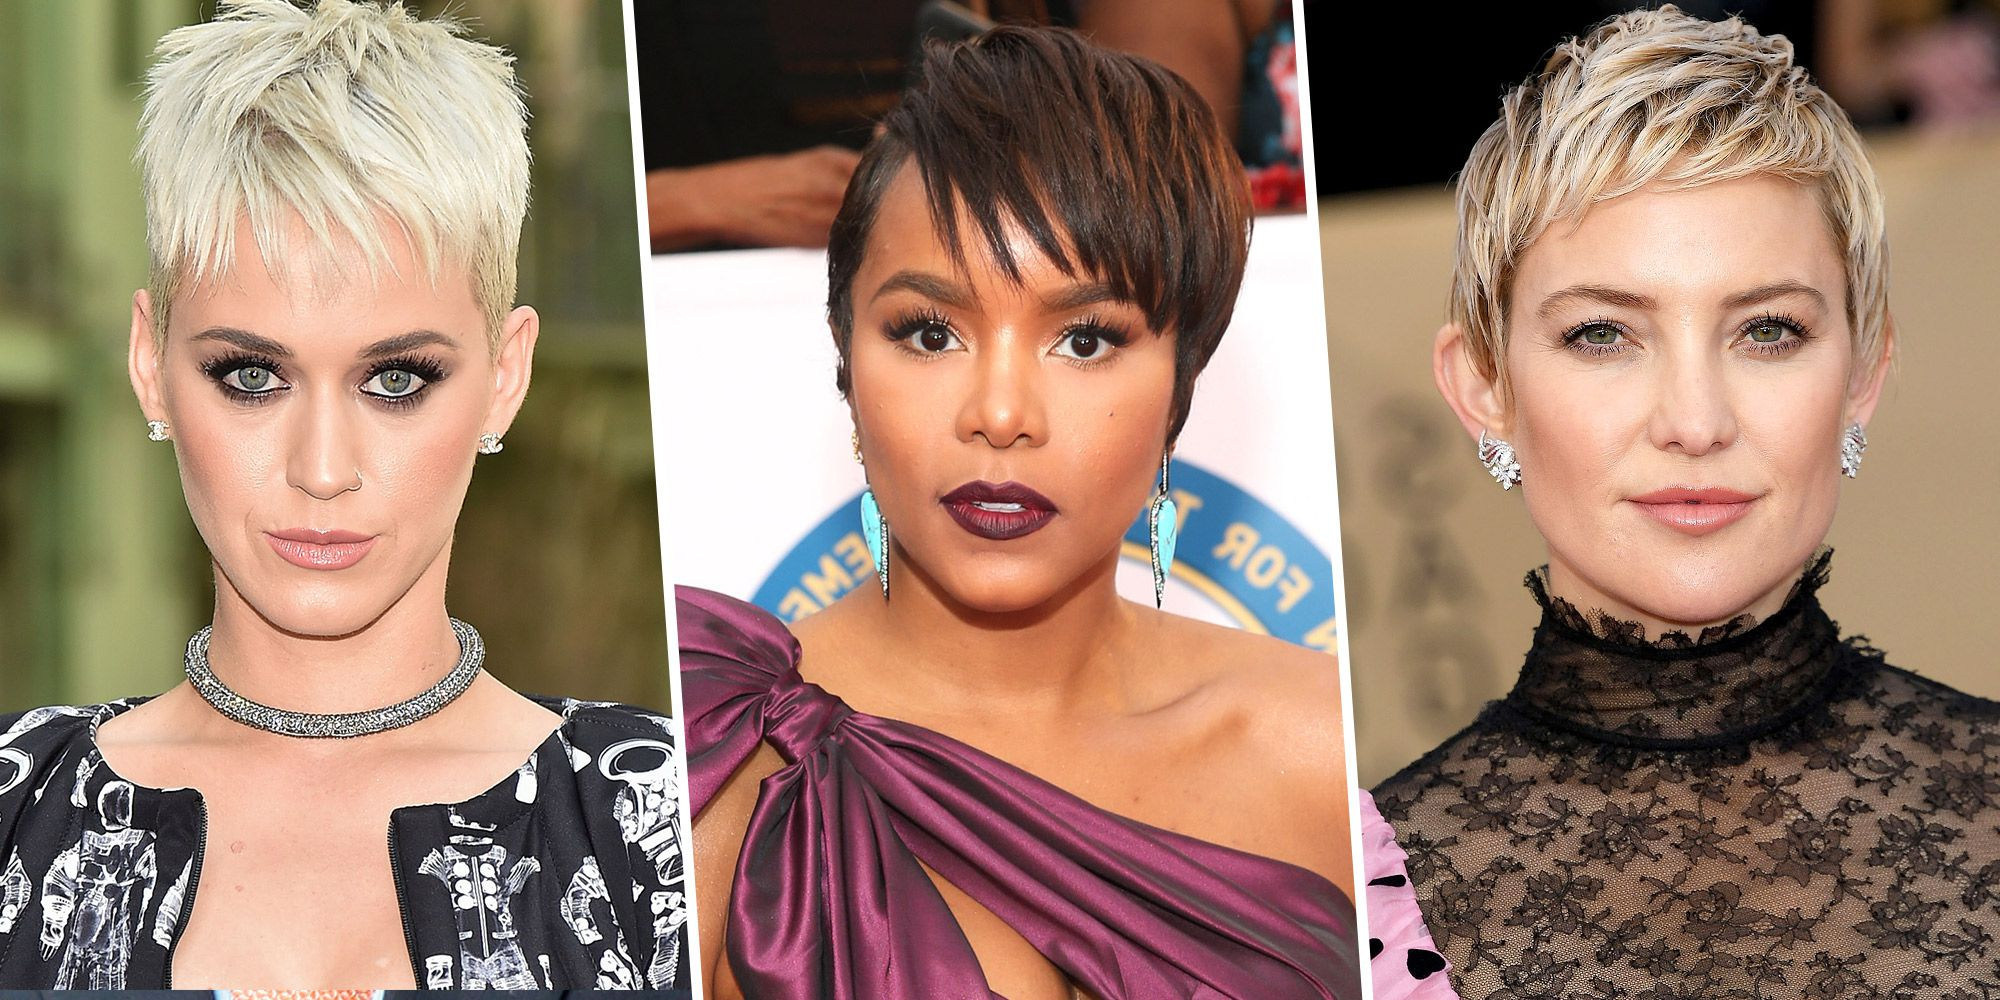 53 Best Pixie Cut Hairstyle Ideas 2018 – Cute Celebrity Pixie Haircuts Throughout Sleeked Down Pixie Hairstyles With Texturizing (View 11 of 20)